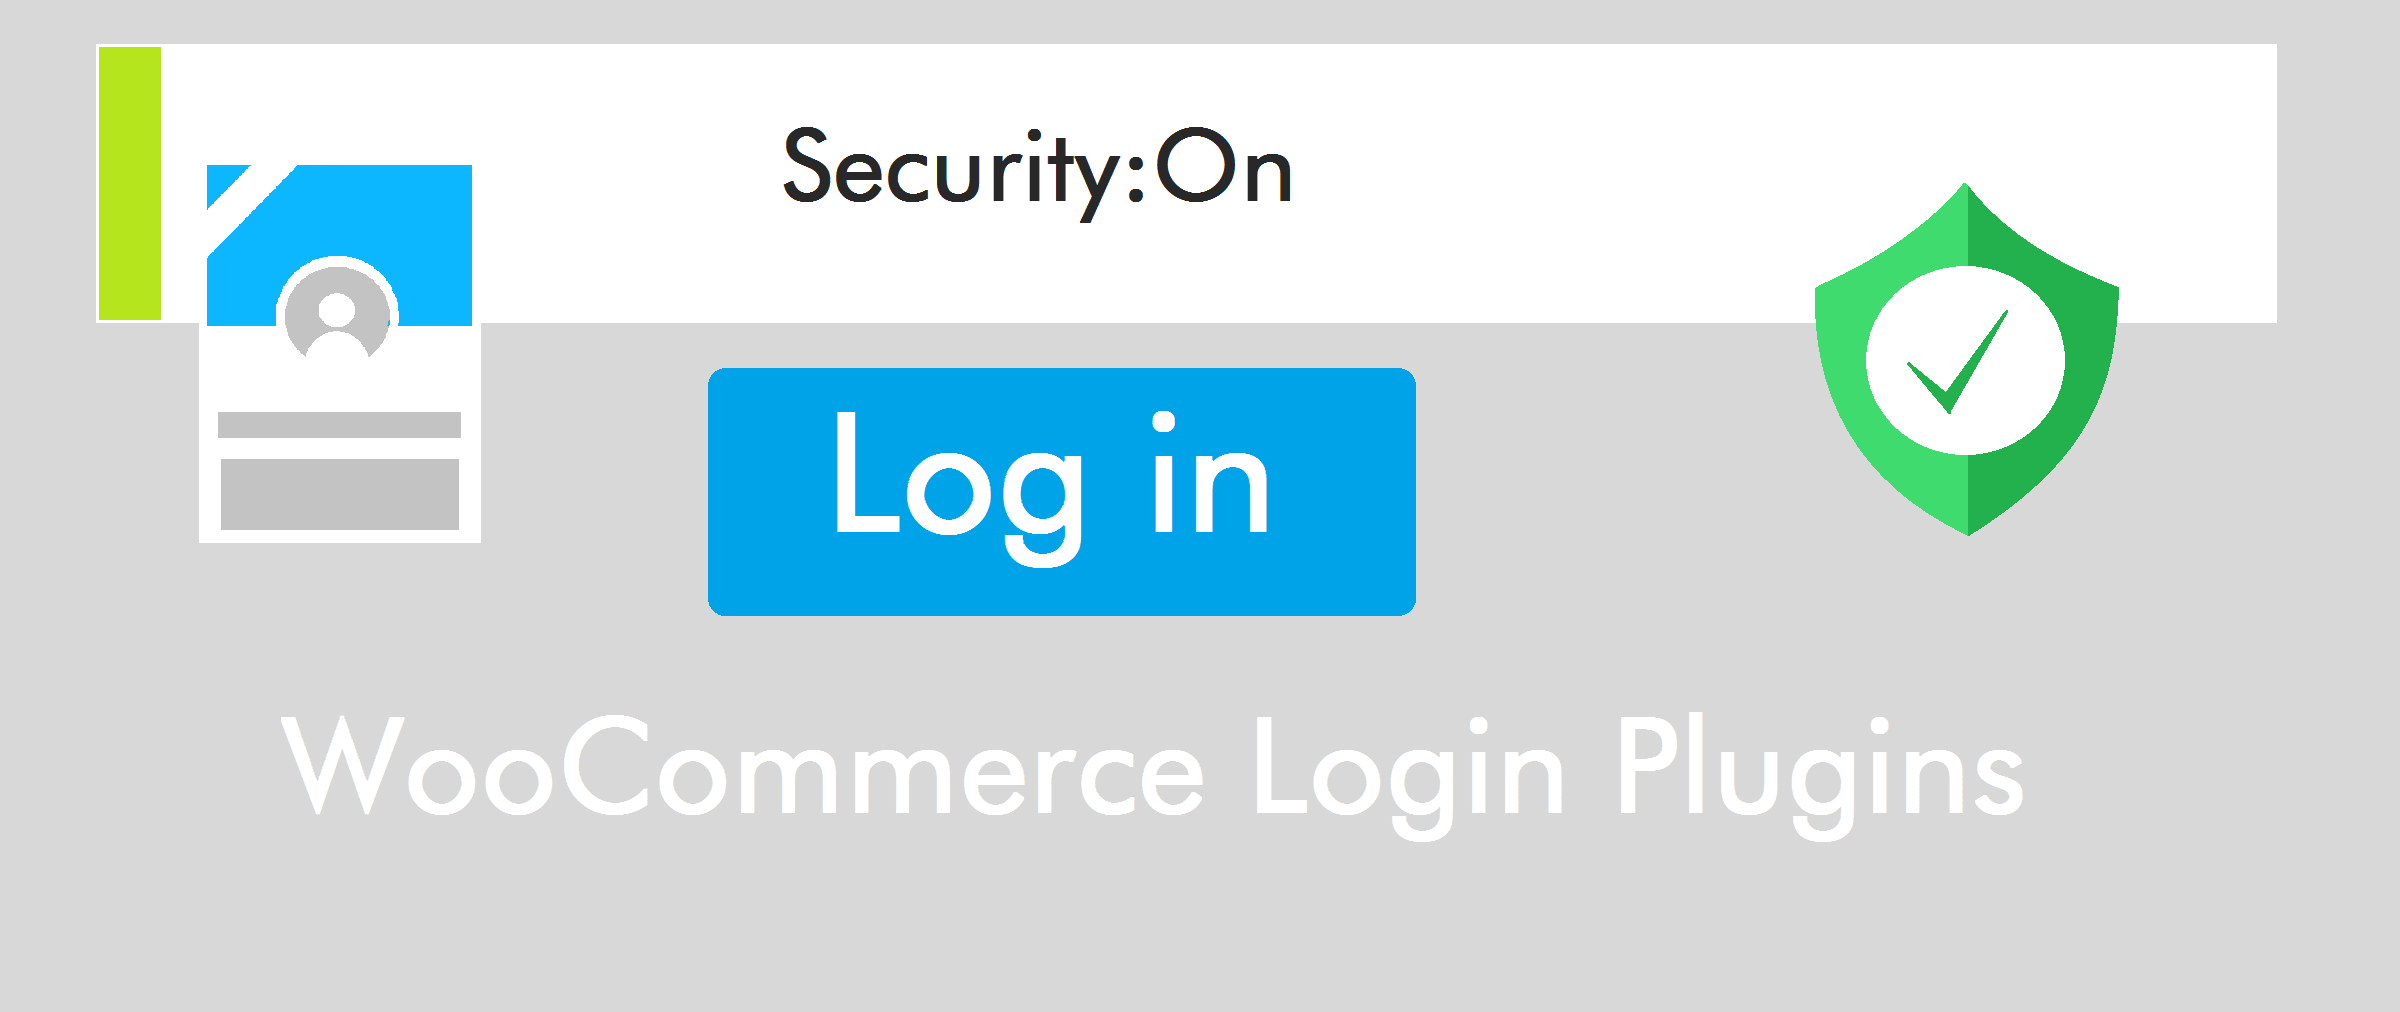 50 Free Plugins For Login On WooCommerce Site in 2020